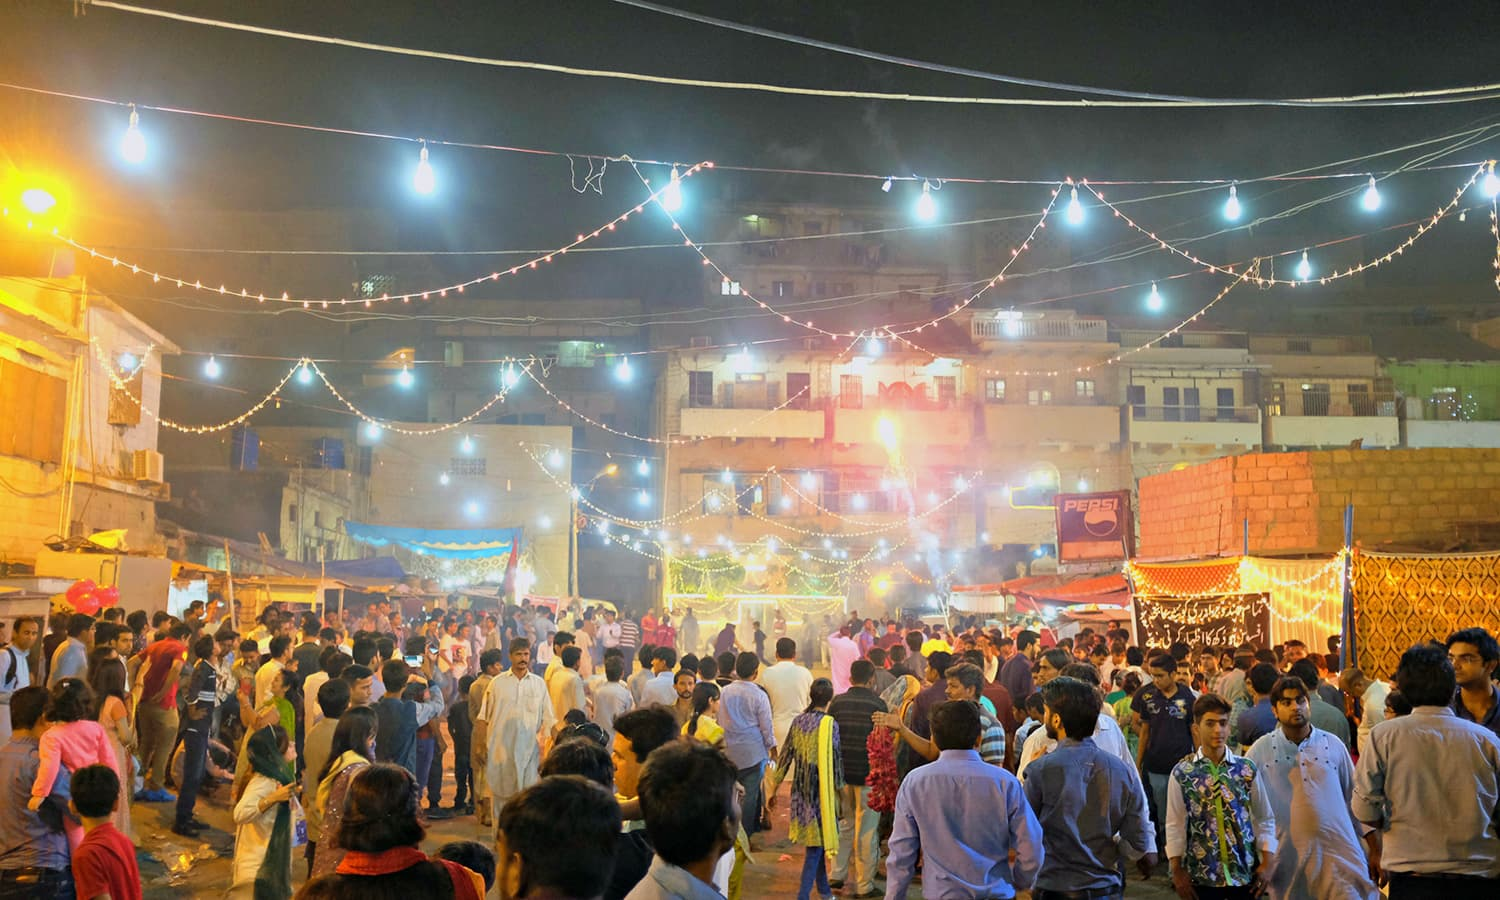 By the time we returned to the entrance, more people had joined the celebrations.